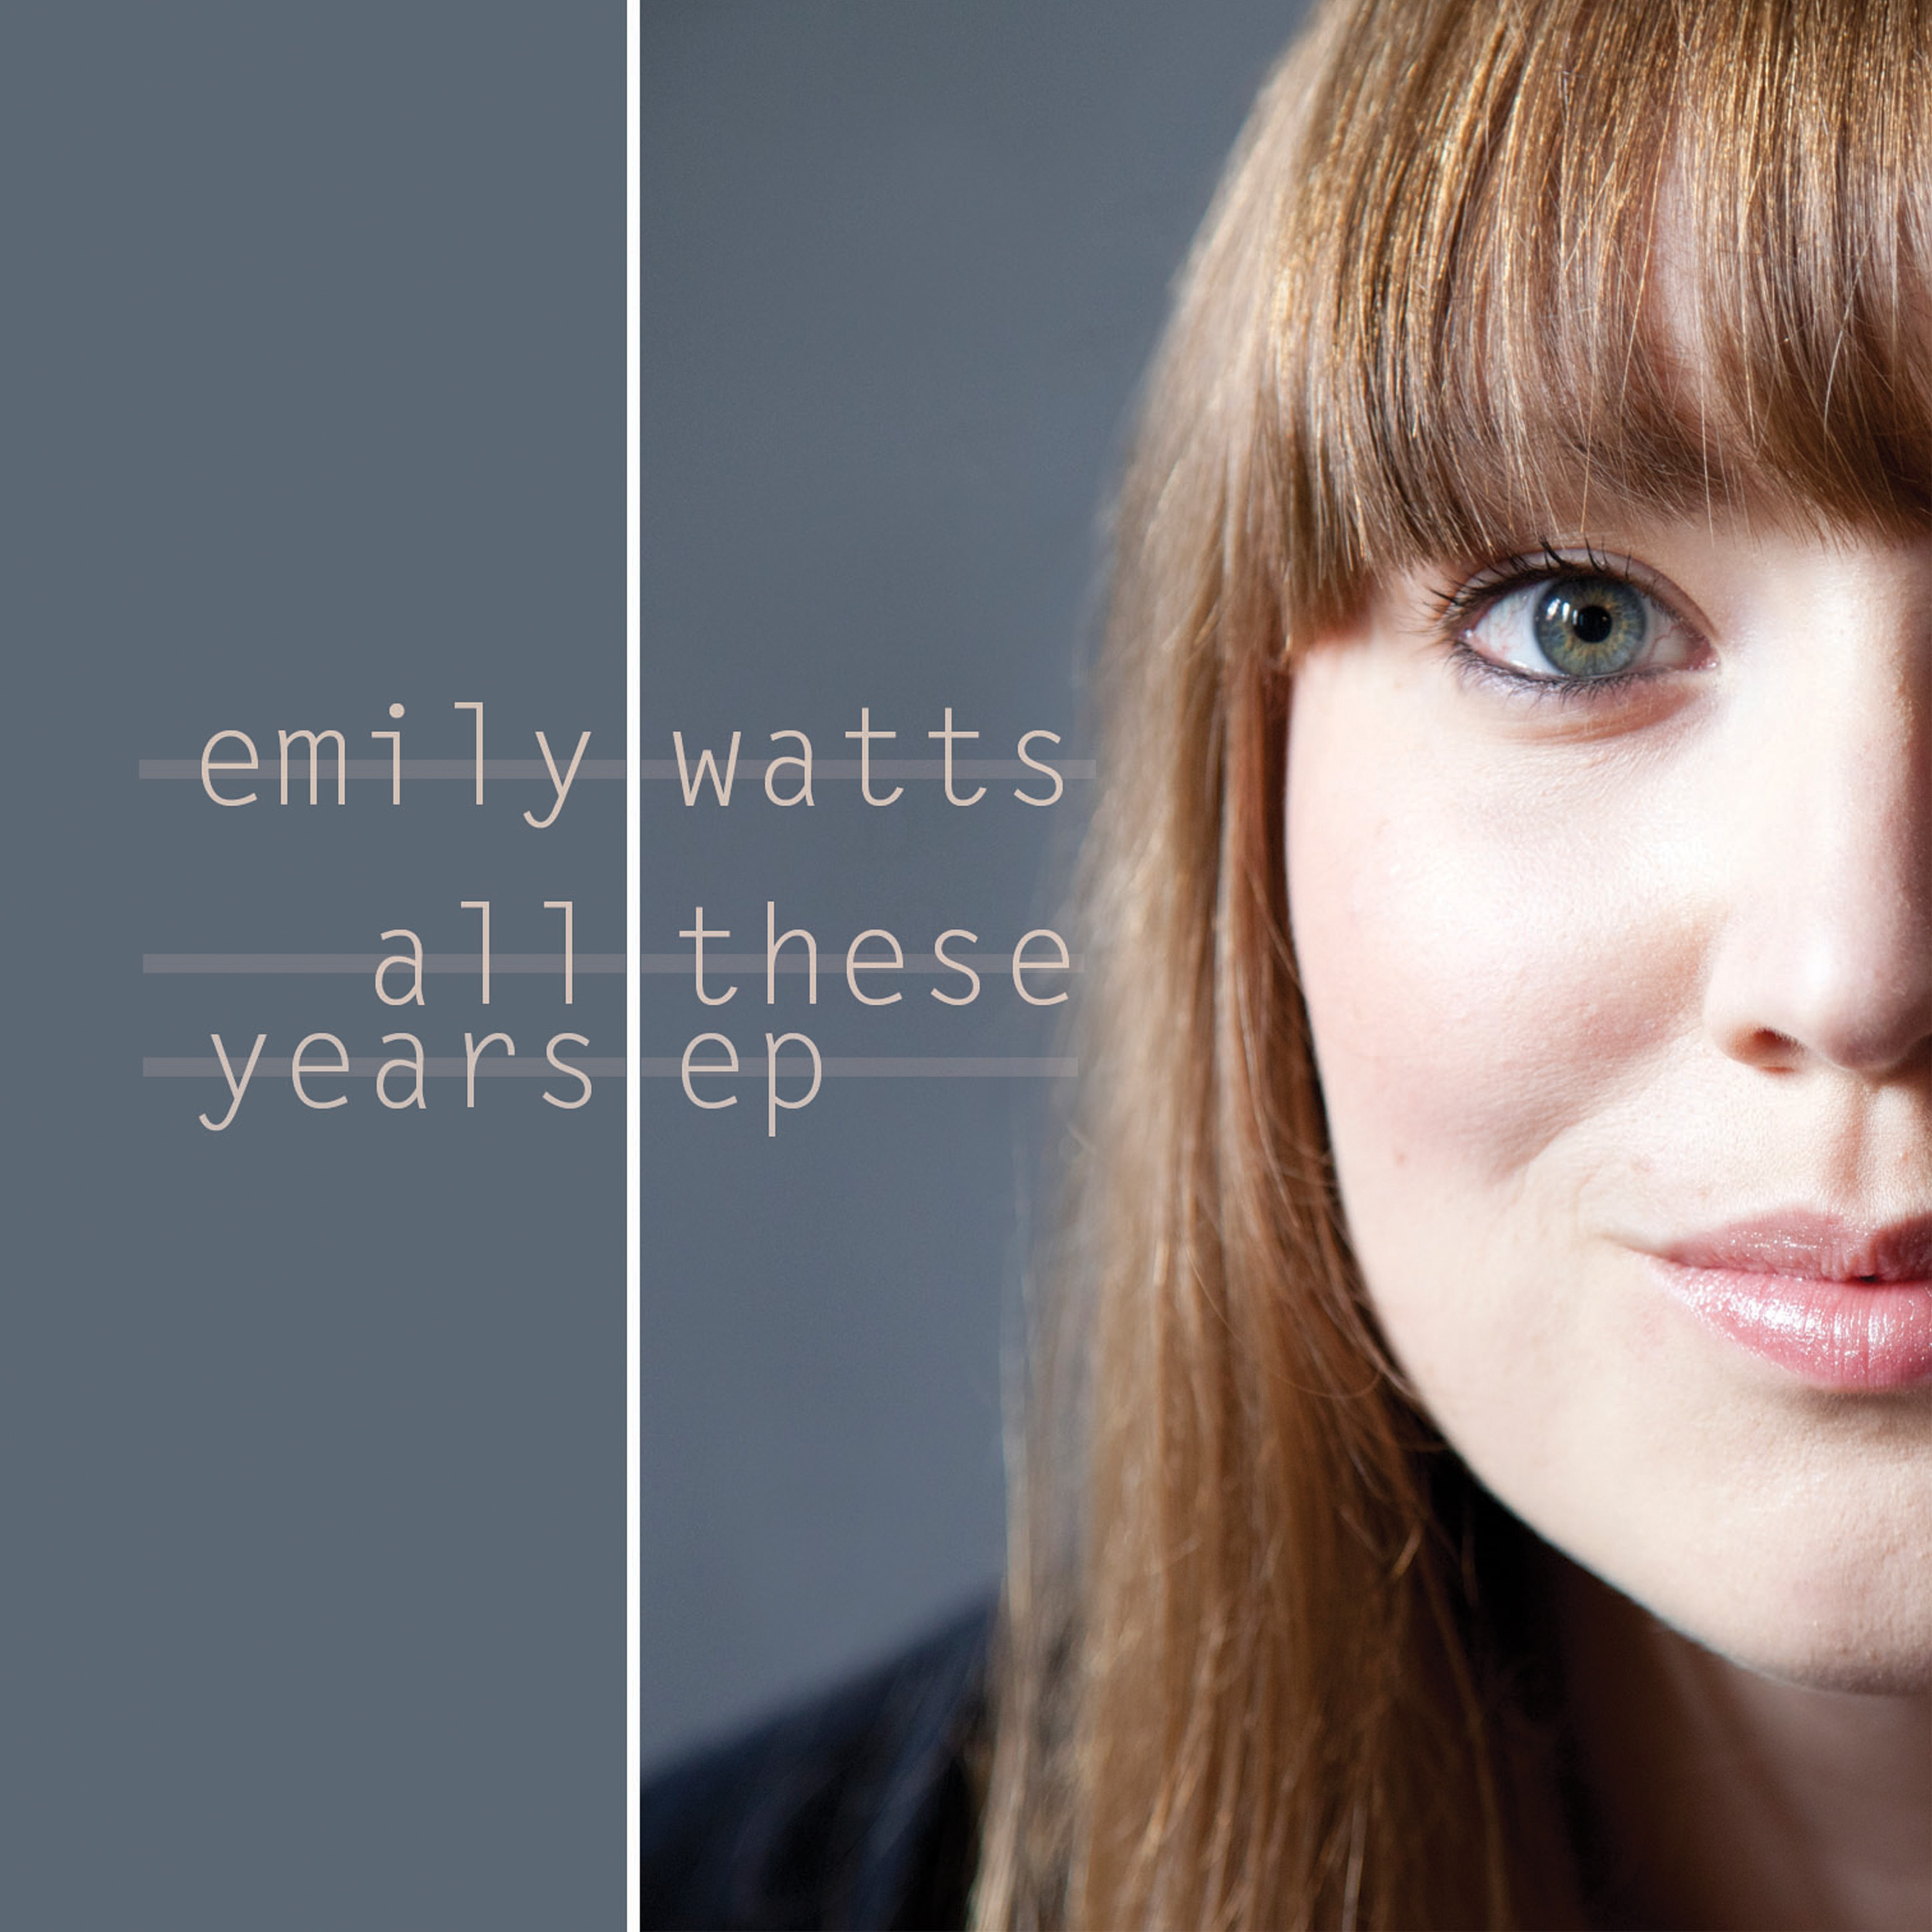 All These Years EP (signed) - Emily Watts